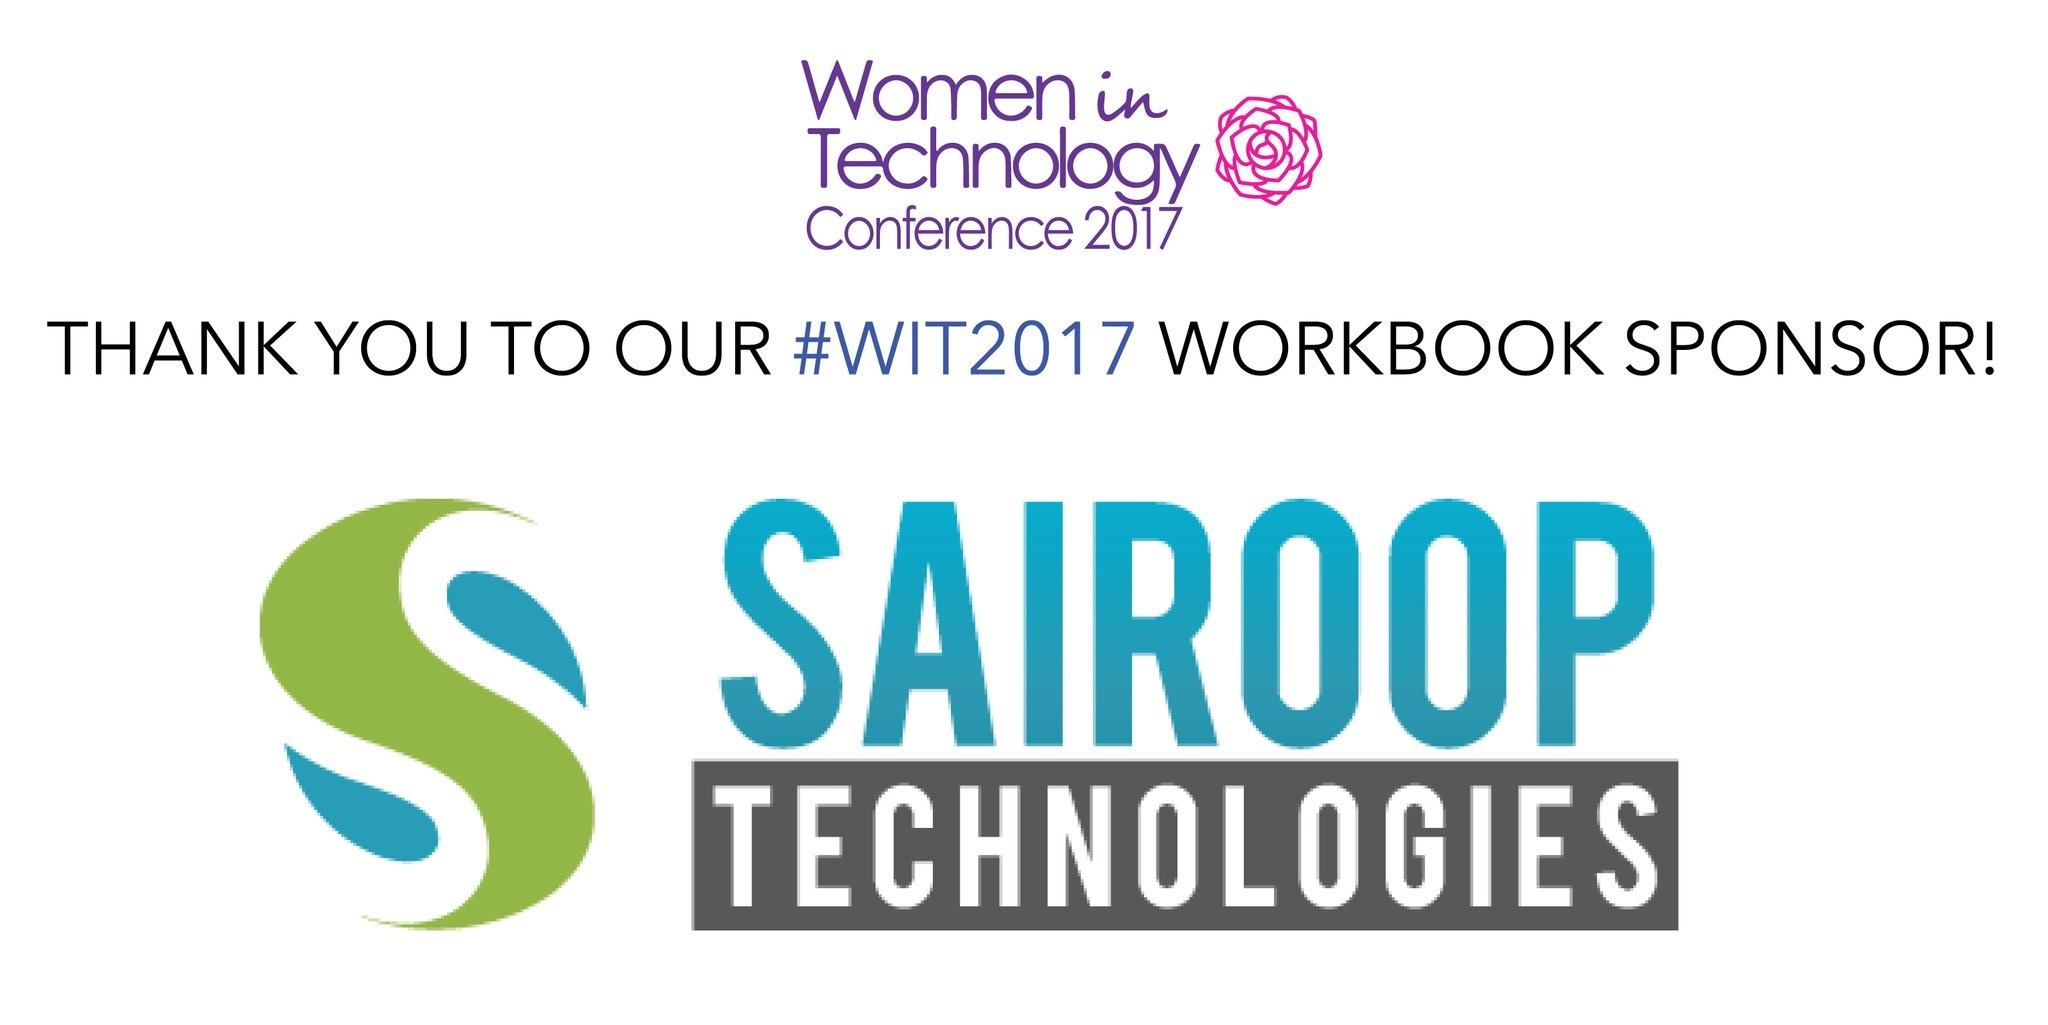 Sairoop Technologies was one of the sponsors at the WIT 2017